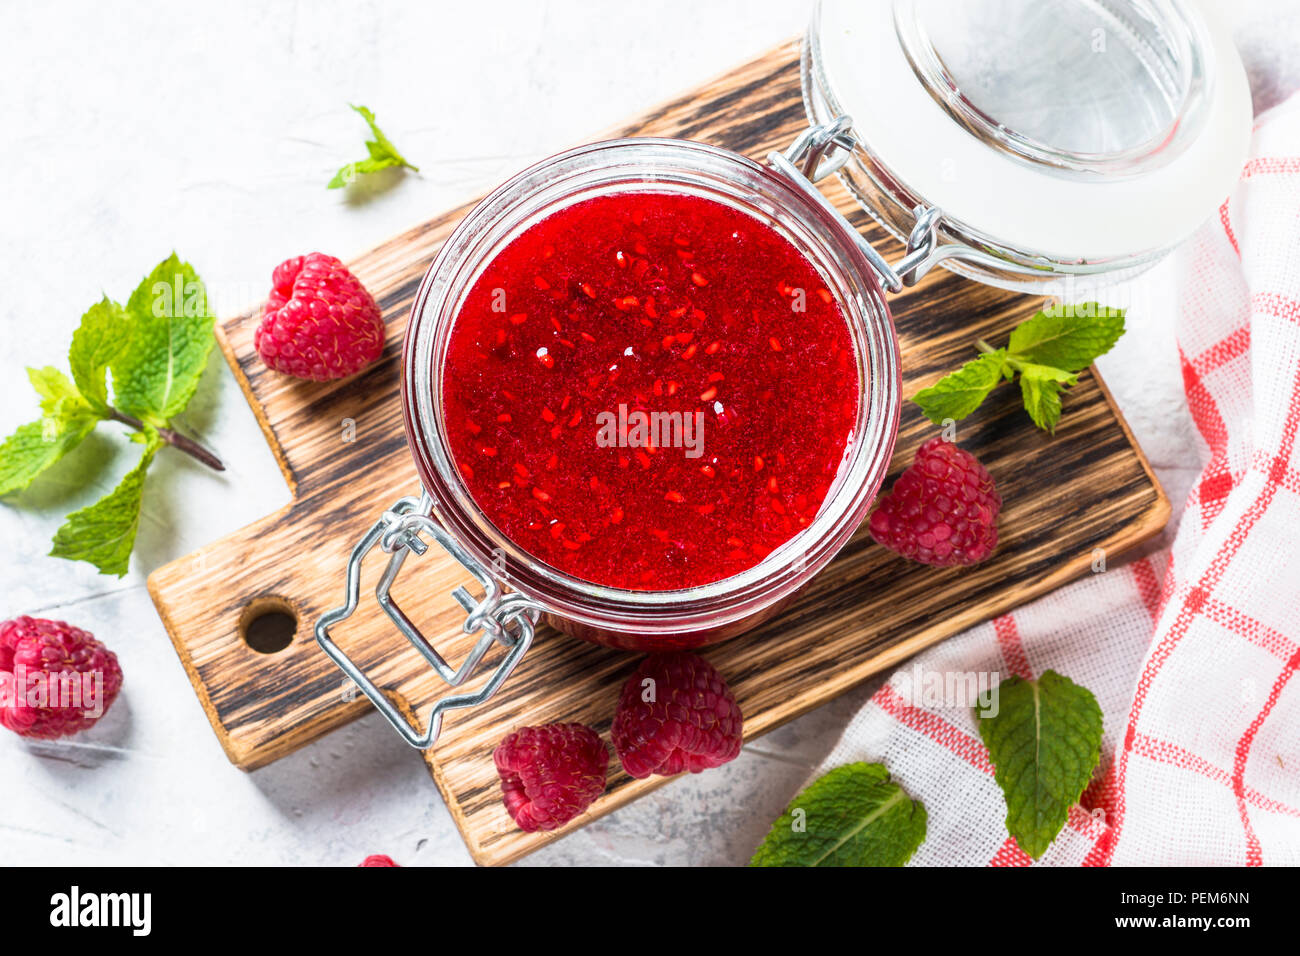 Strawberry jam in glass jar top view.  - Stock Image